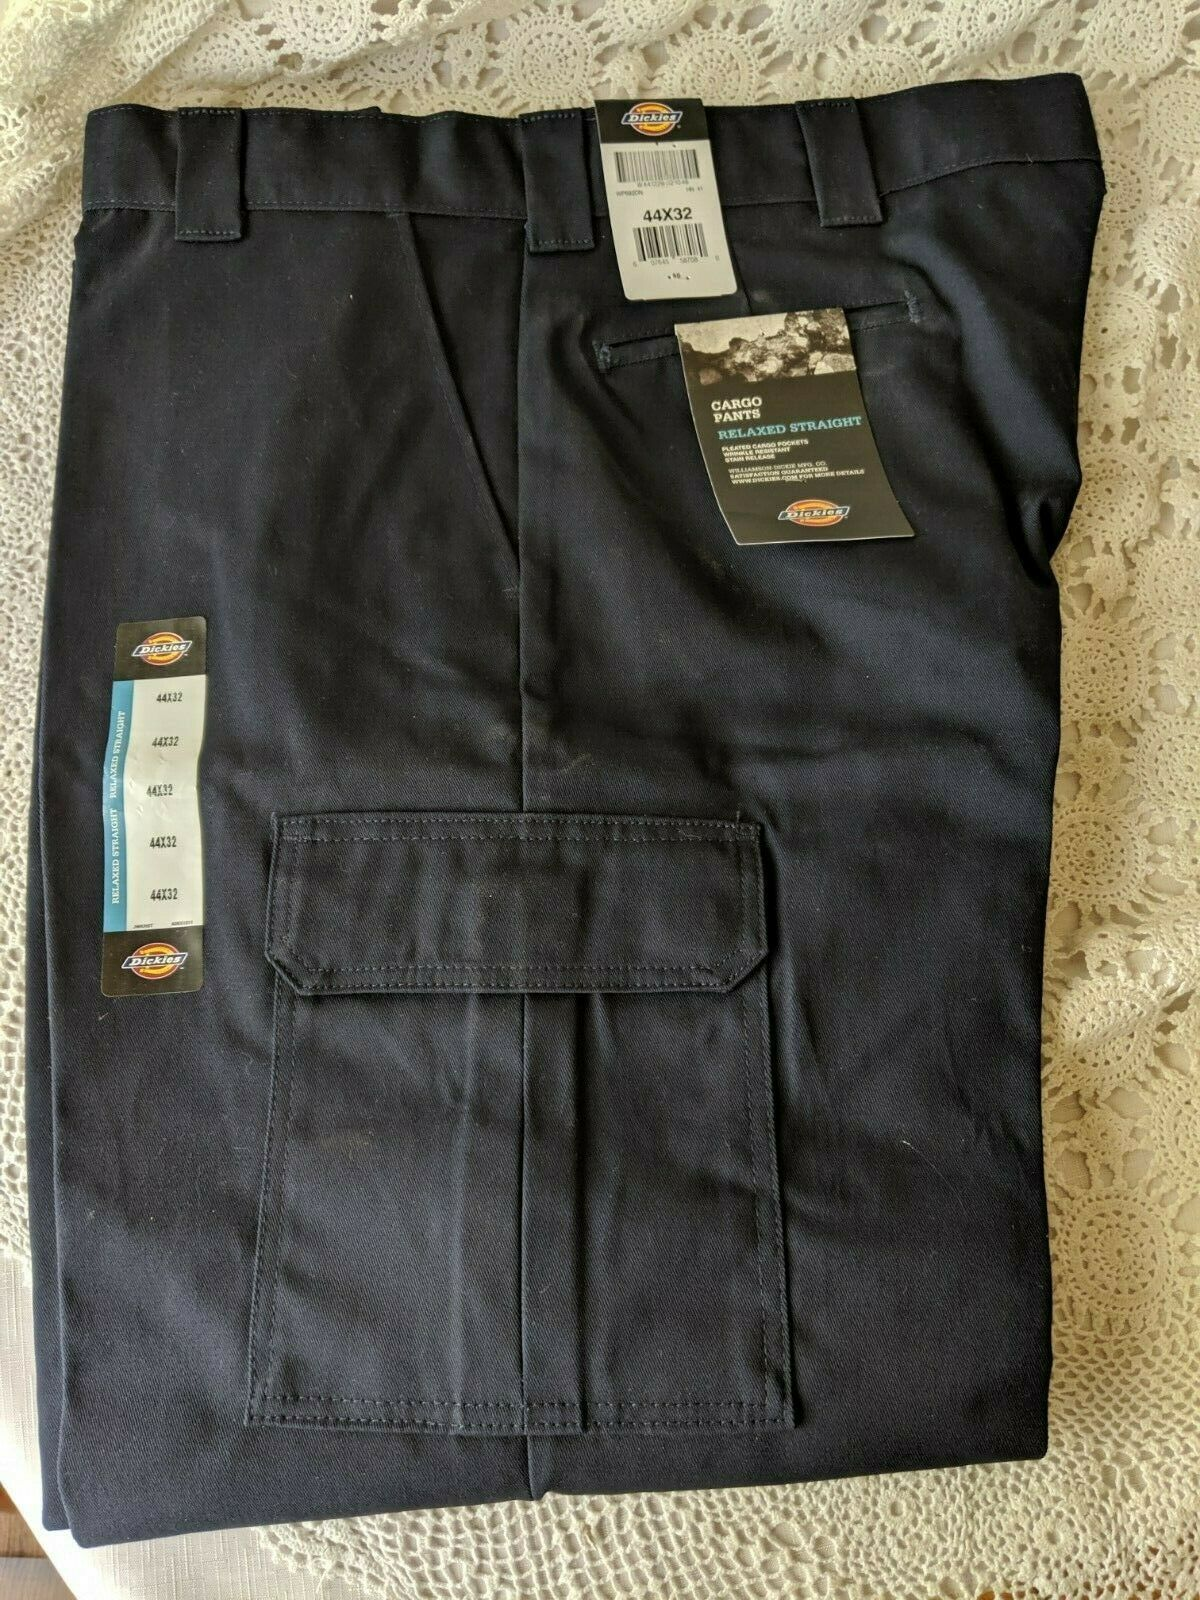 Primary image for Men's Dickies Navy Blue Cargo Pants Size 44 x 32 NWT